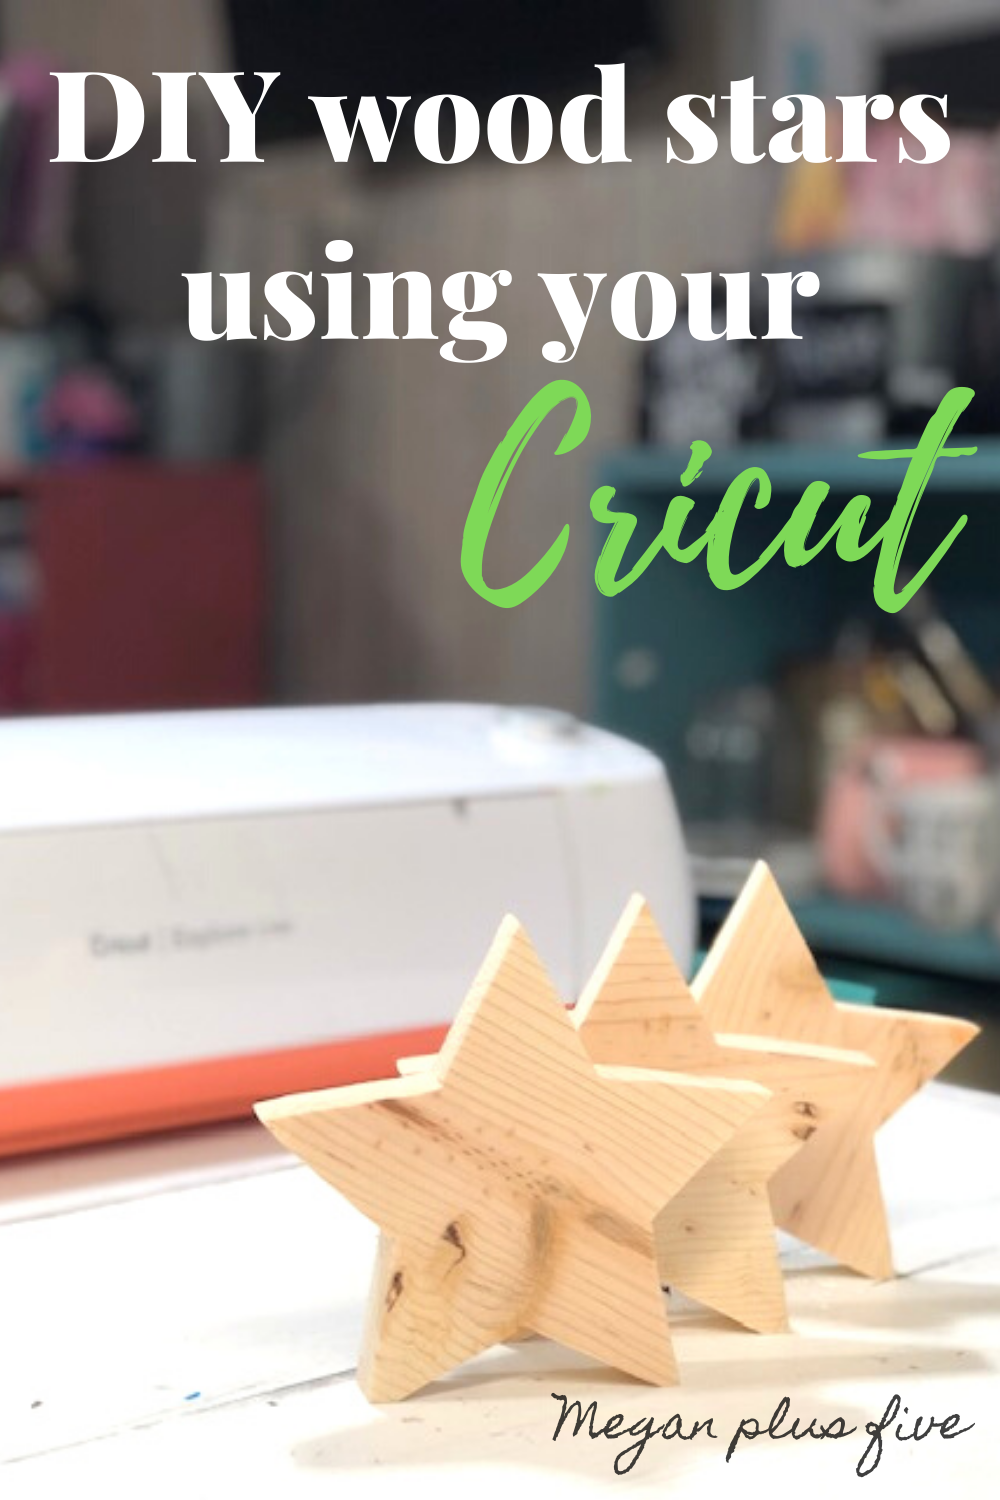 How to use your Cricut to make wood star cutouts. Learn how to make templates with your vinyl cutting machine to cut shapes and letters out of wood.